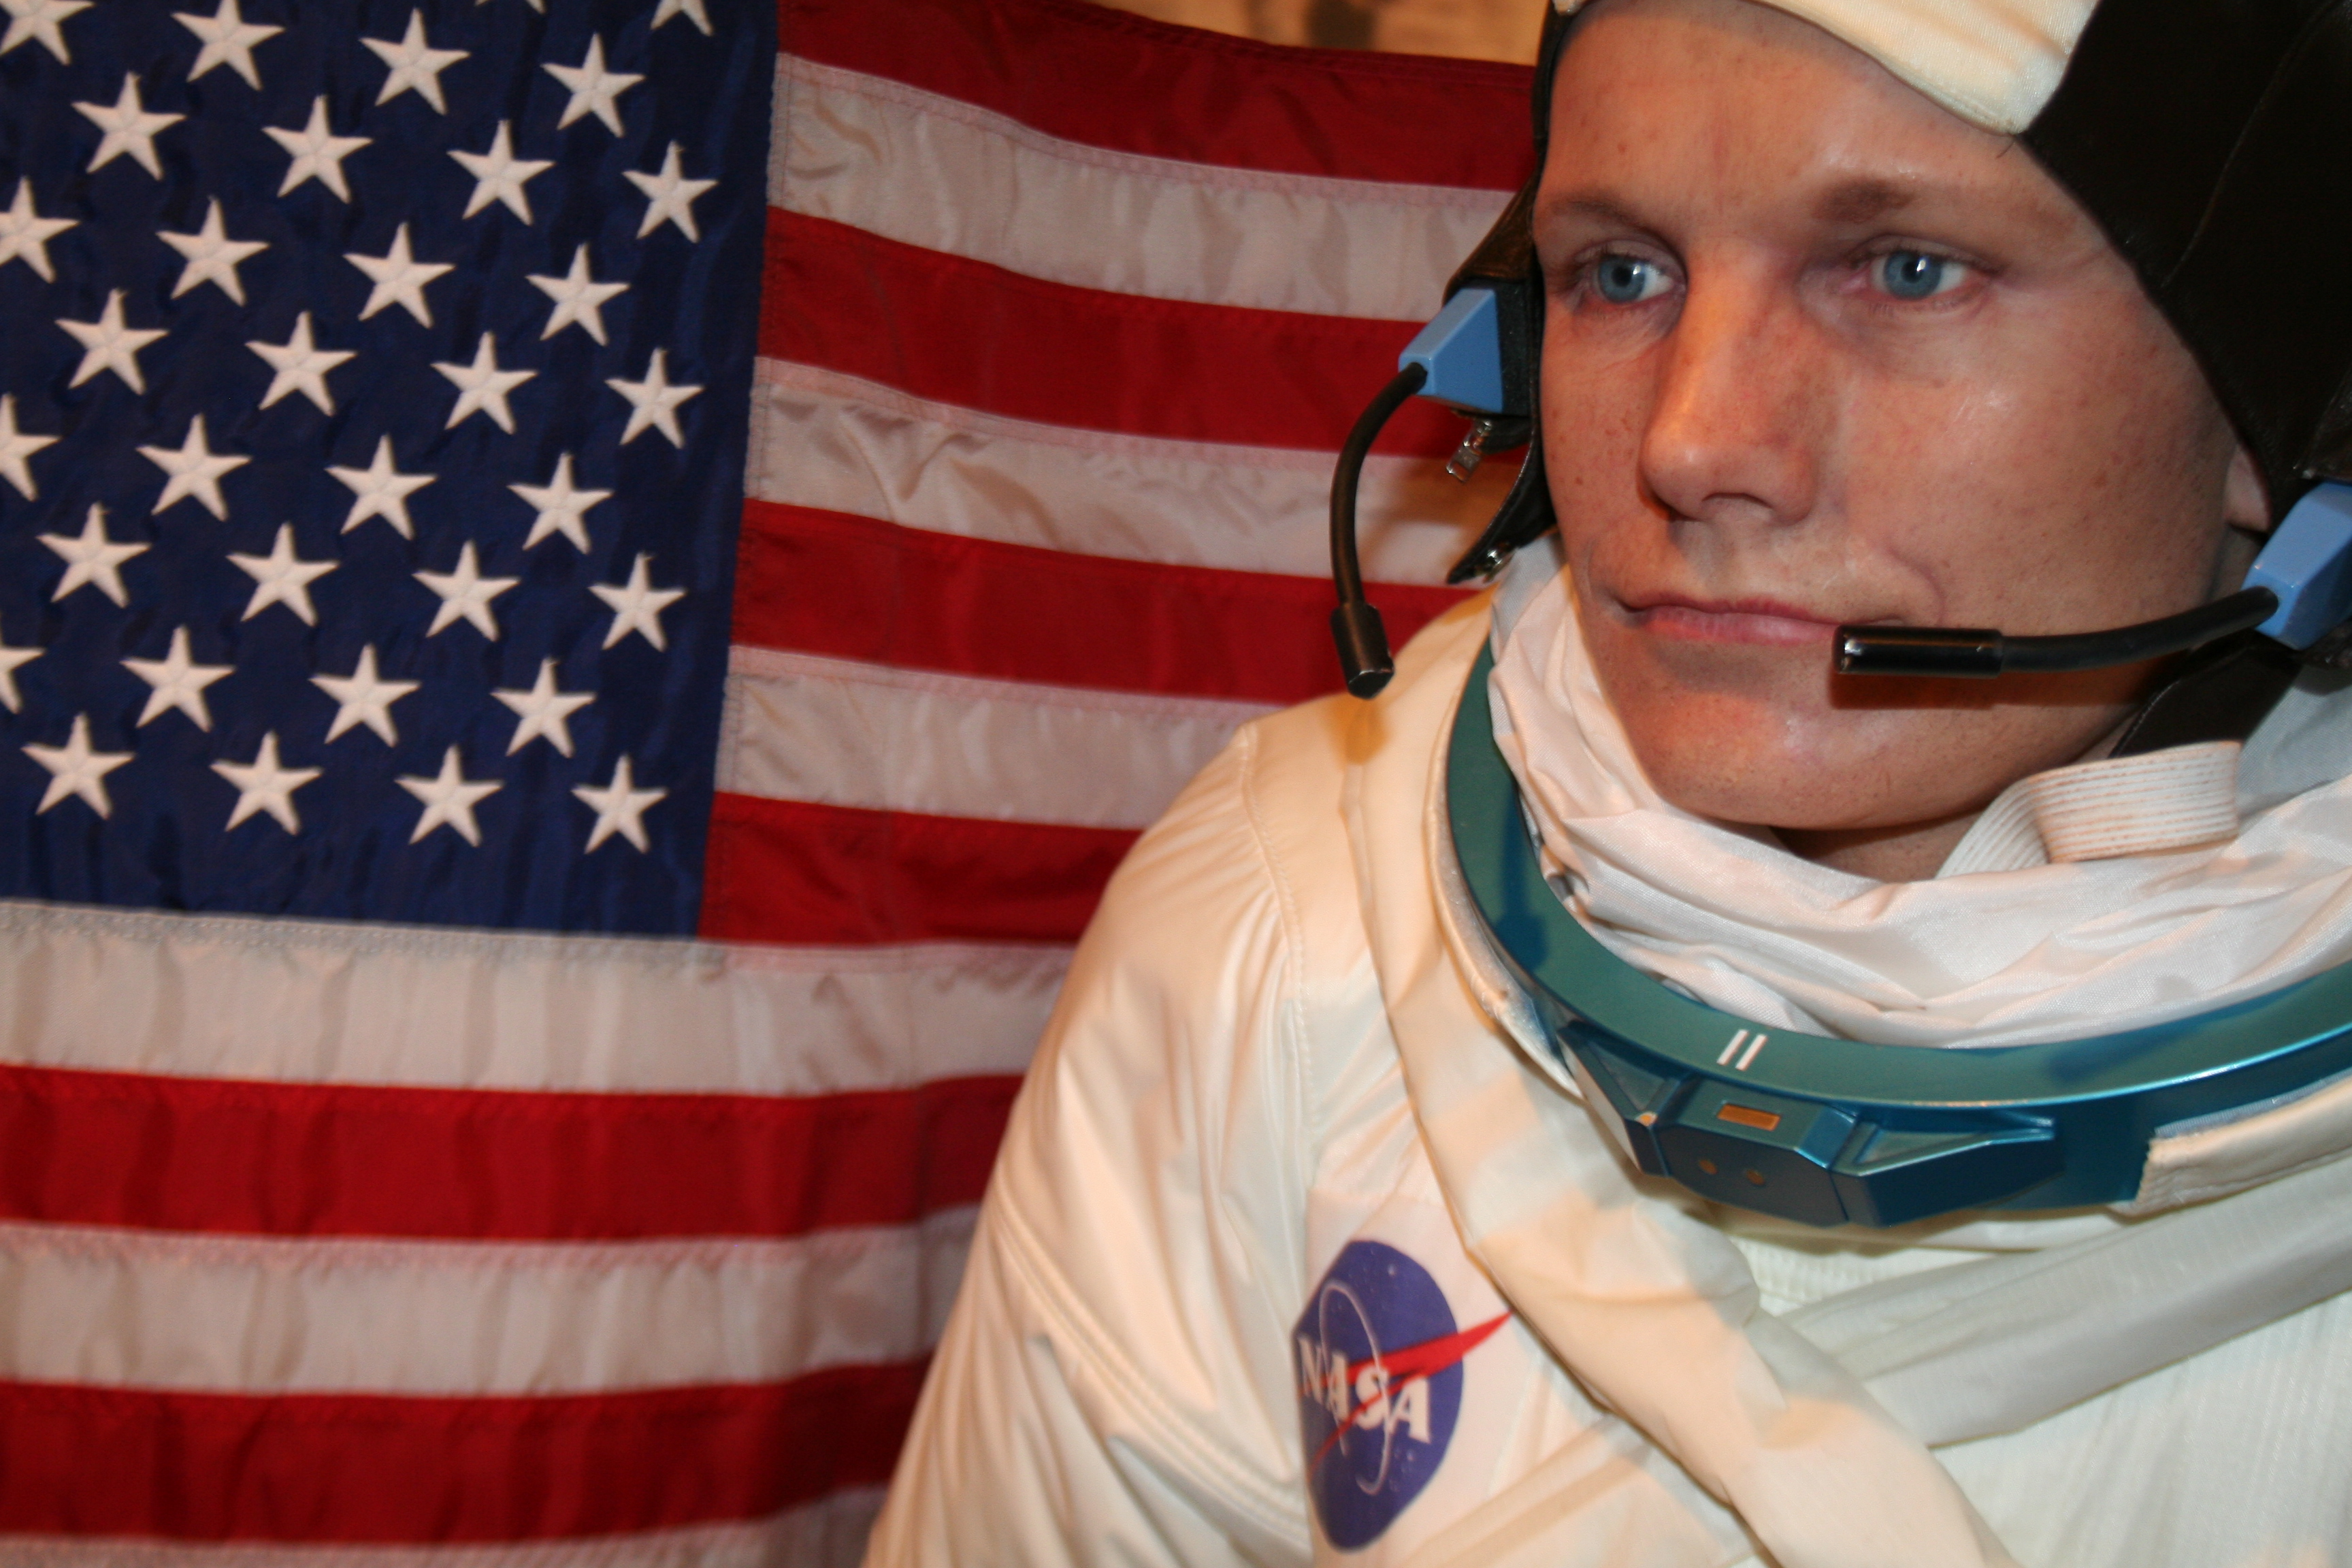 neil armstrong baby girl - photo #12